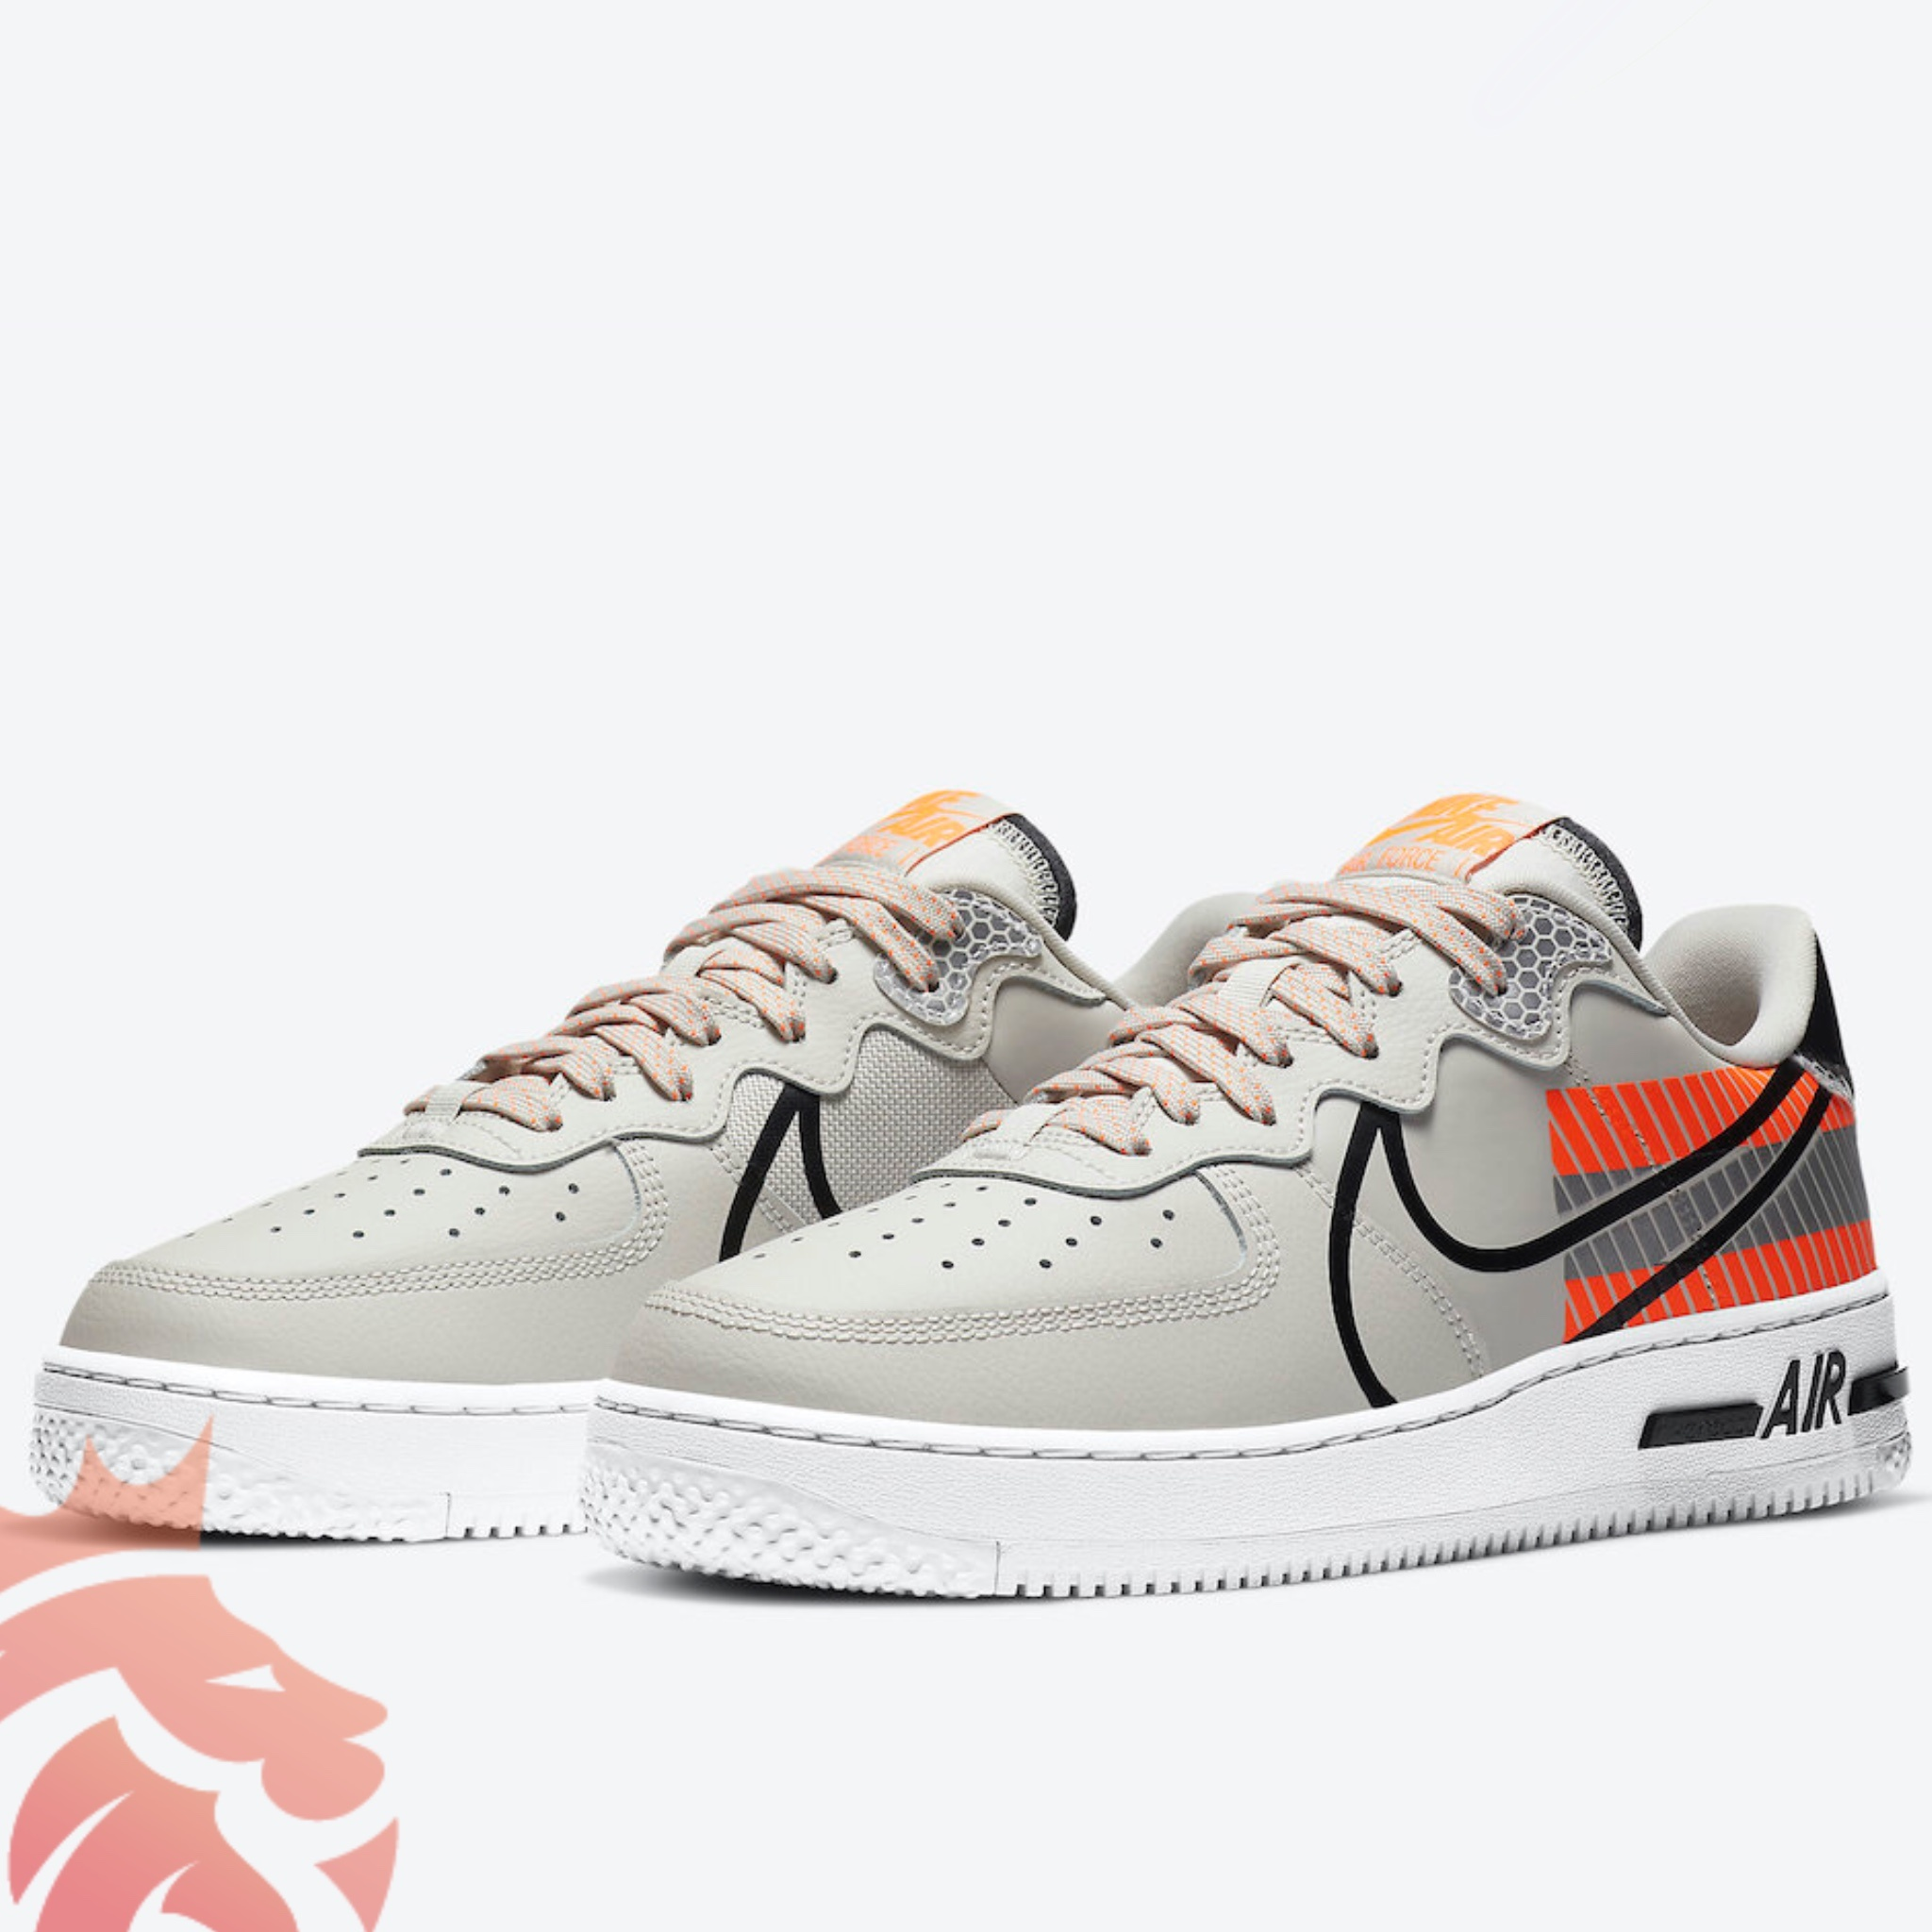 3M x Nike Air Force 1 React CT3316-002 Grey/Orange/Black